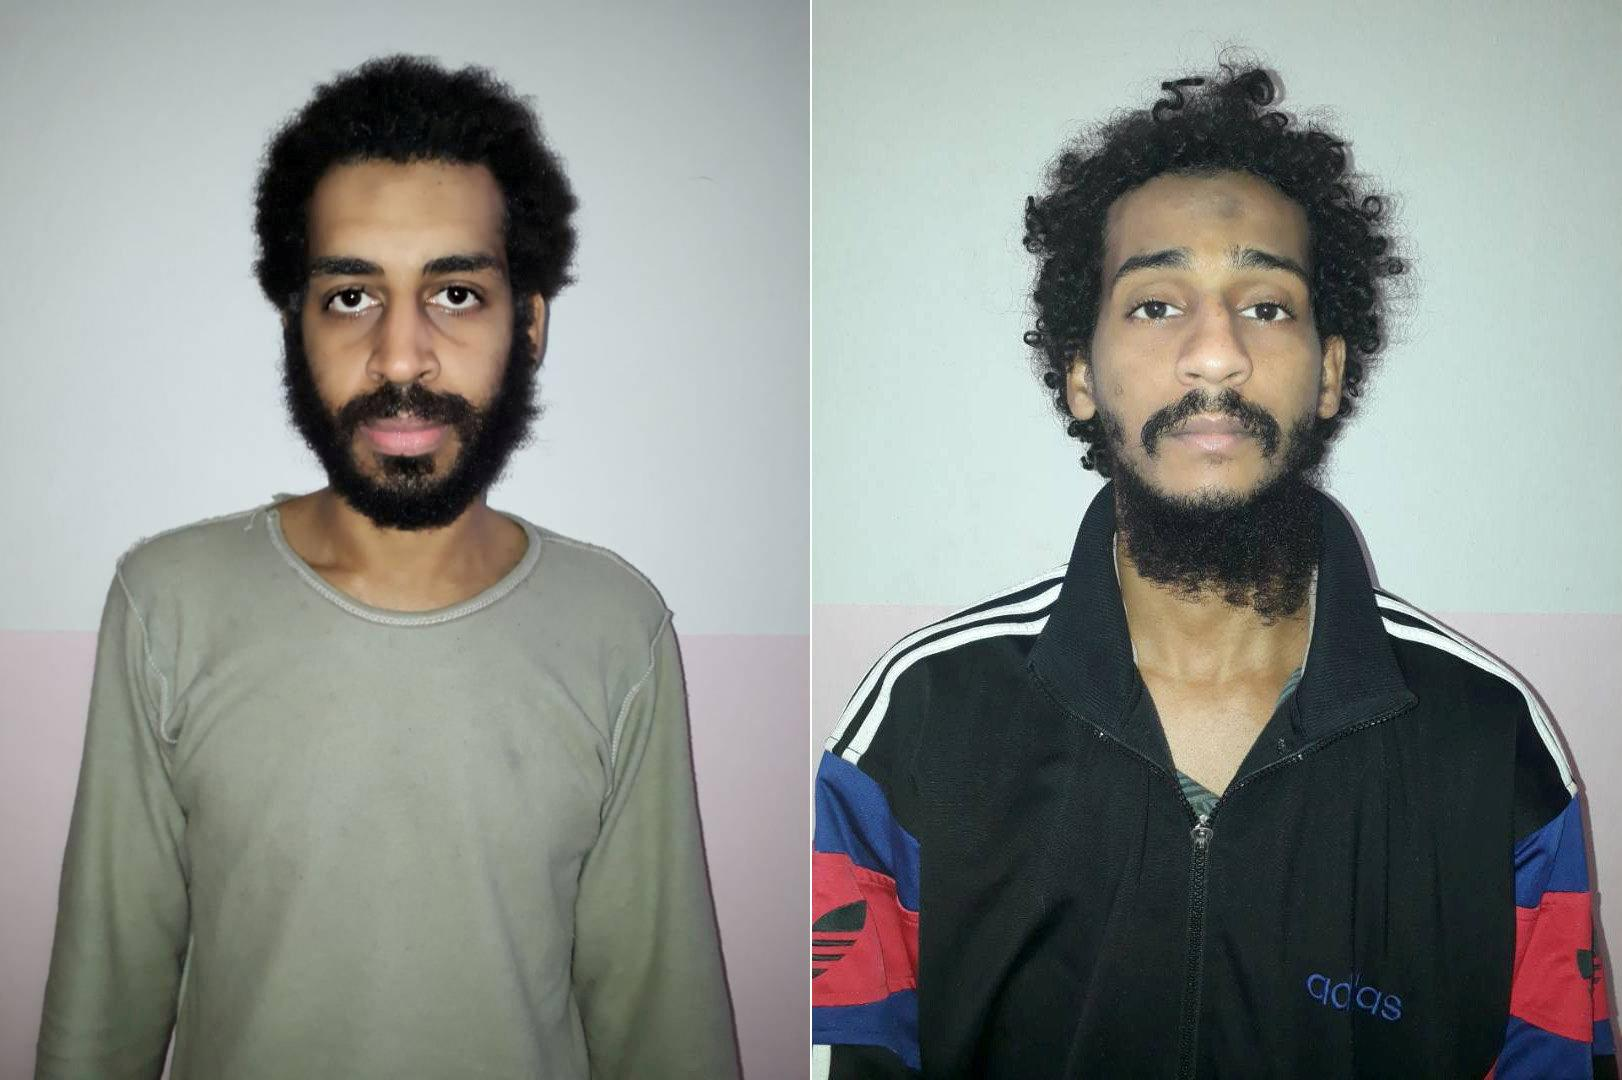 A combination picture shows Alexanda Kotey and Shafee Elsheikh, who the Syrian Democratic Forces (SDF) claim are British nationals, in these undated handout pictures in Amouda, Syria released February 9, 2018. Syrian Democratic Forces/Handout via